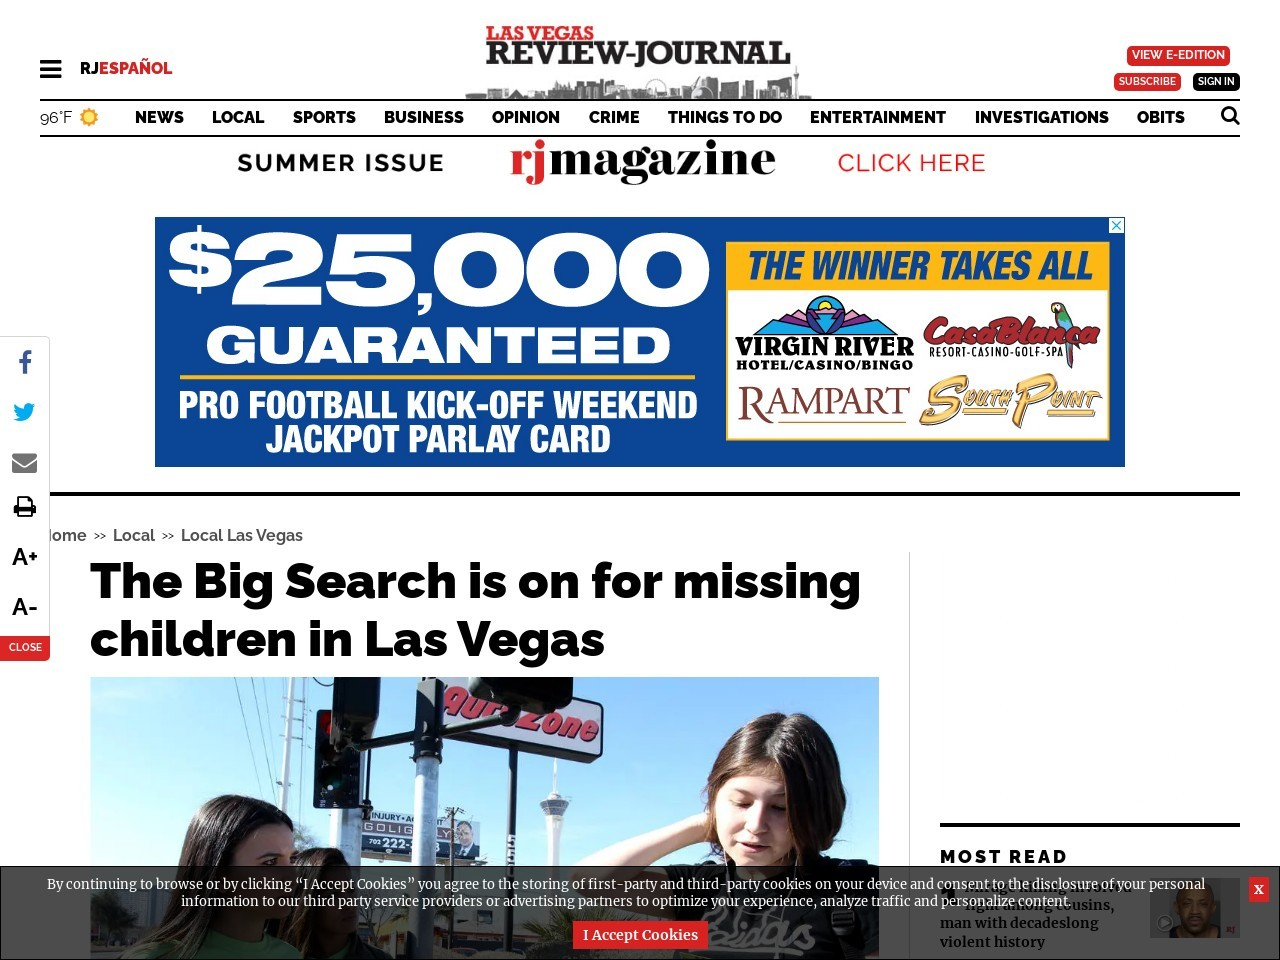 The Big Search is on for missing children in Las Vegas